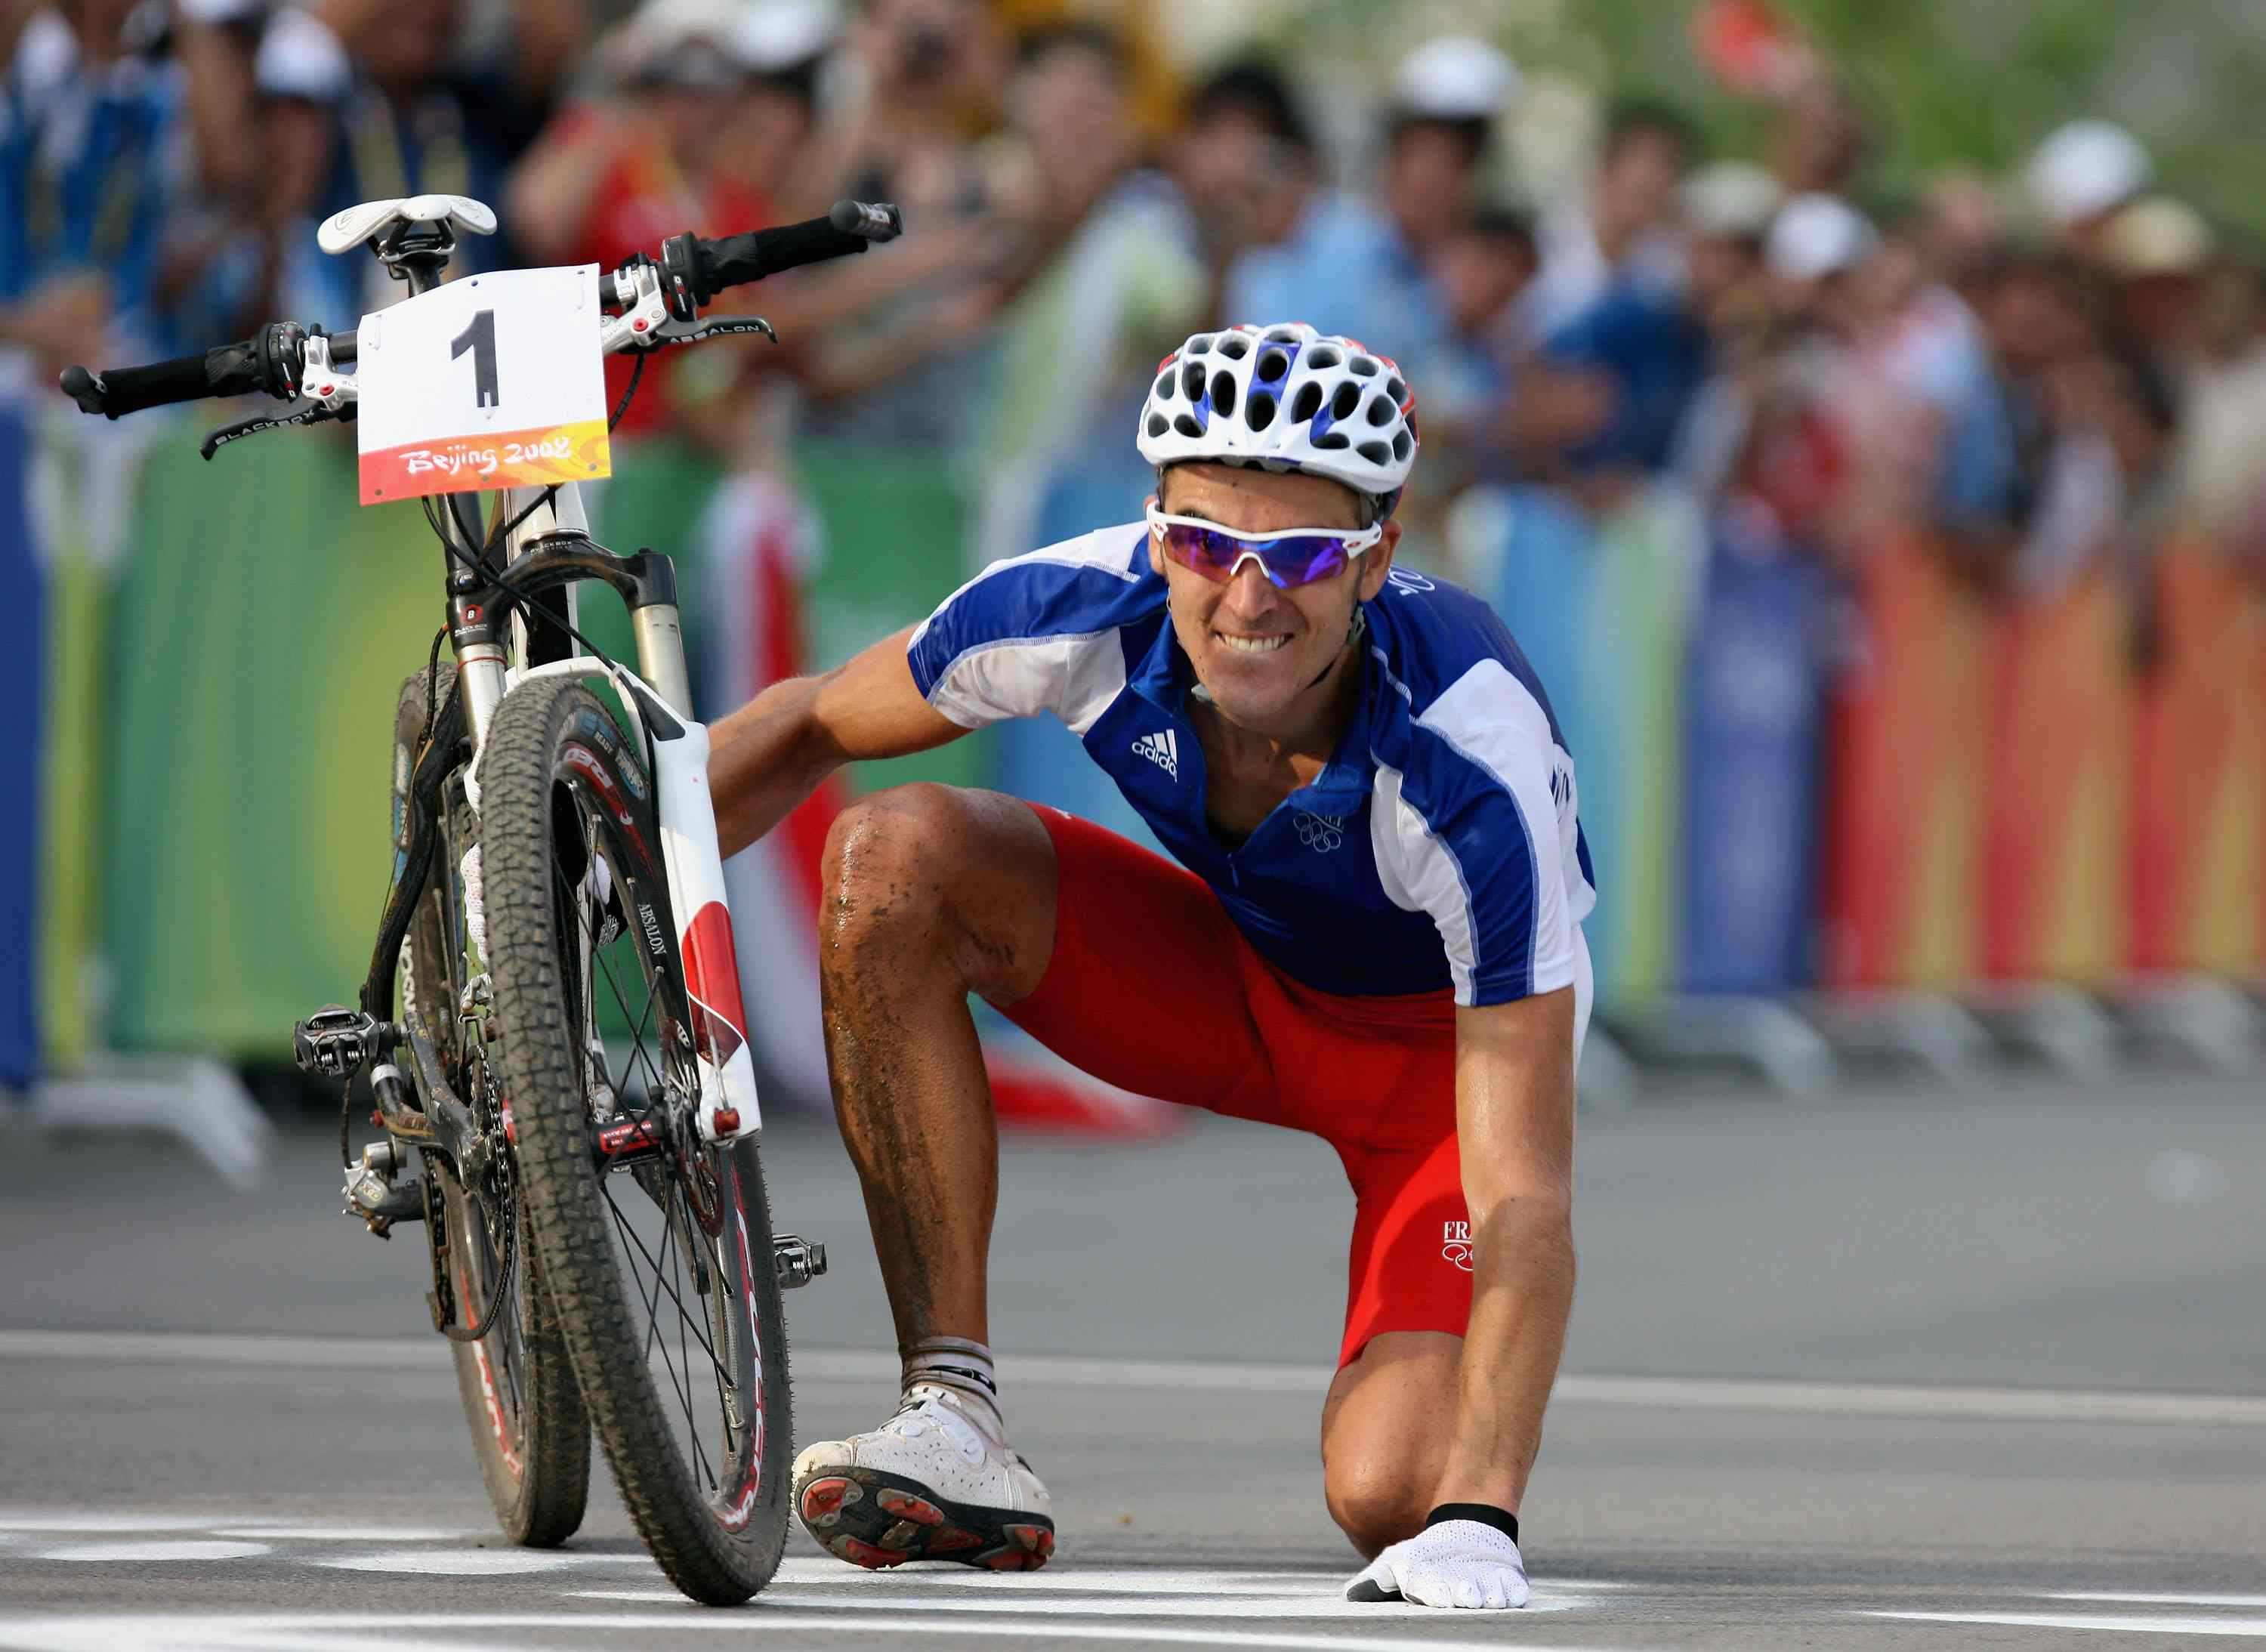 Julien Absalon of France celebrates victory in the Men's Cross Country mountain bike cycling event held at the Laoshan Mountain Bike Course on Day 15 of the Beijing 2008 Olympic Games on August 23, 2008 in Beijing, China.